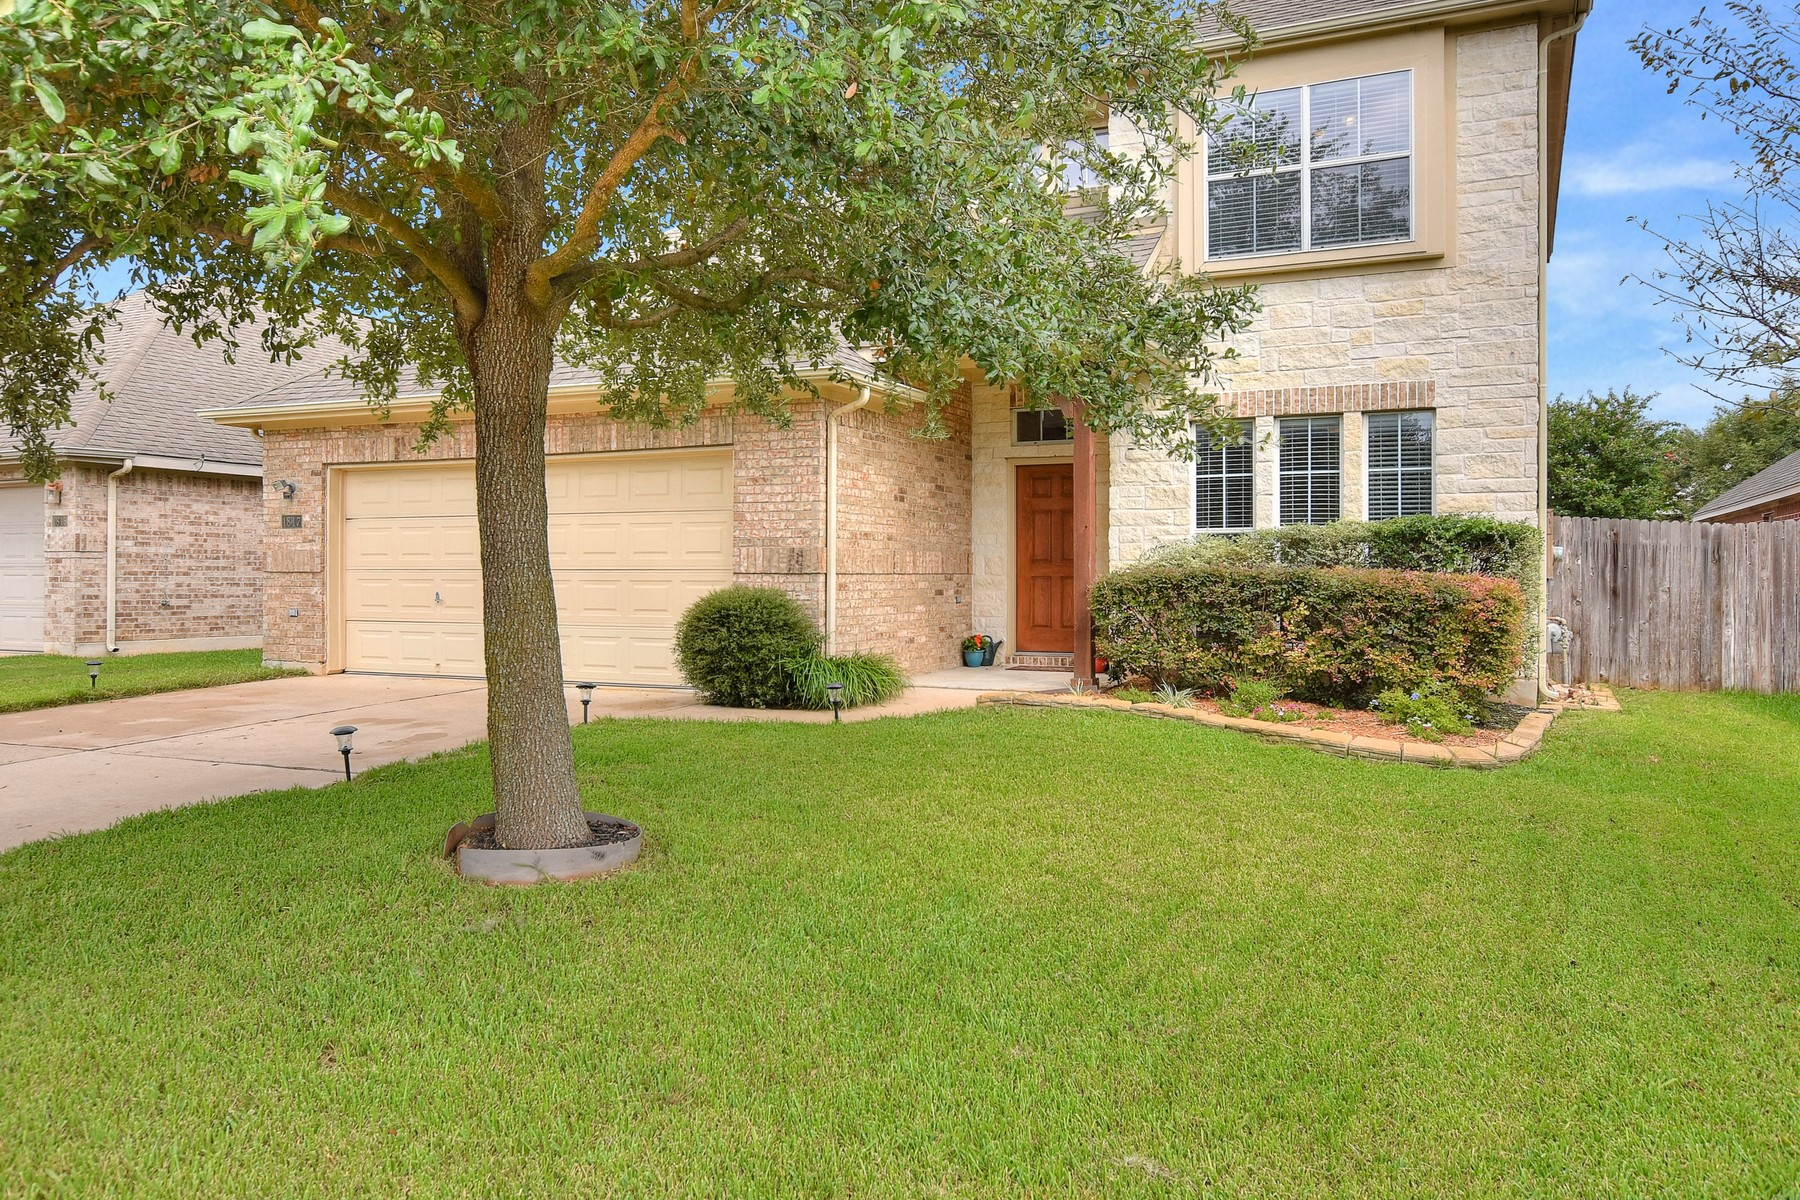 Single Family Home for Sale at Spacious Home Loaded with Charm and Character 1817 Nelson Ranch Loop Cedar Park, Texas 78613 United States